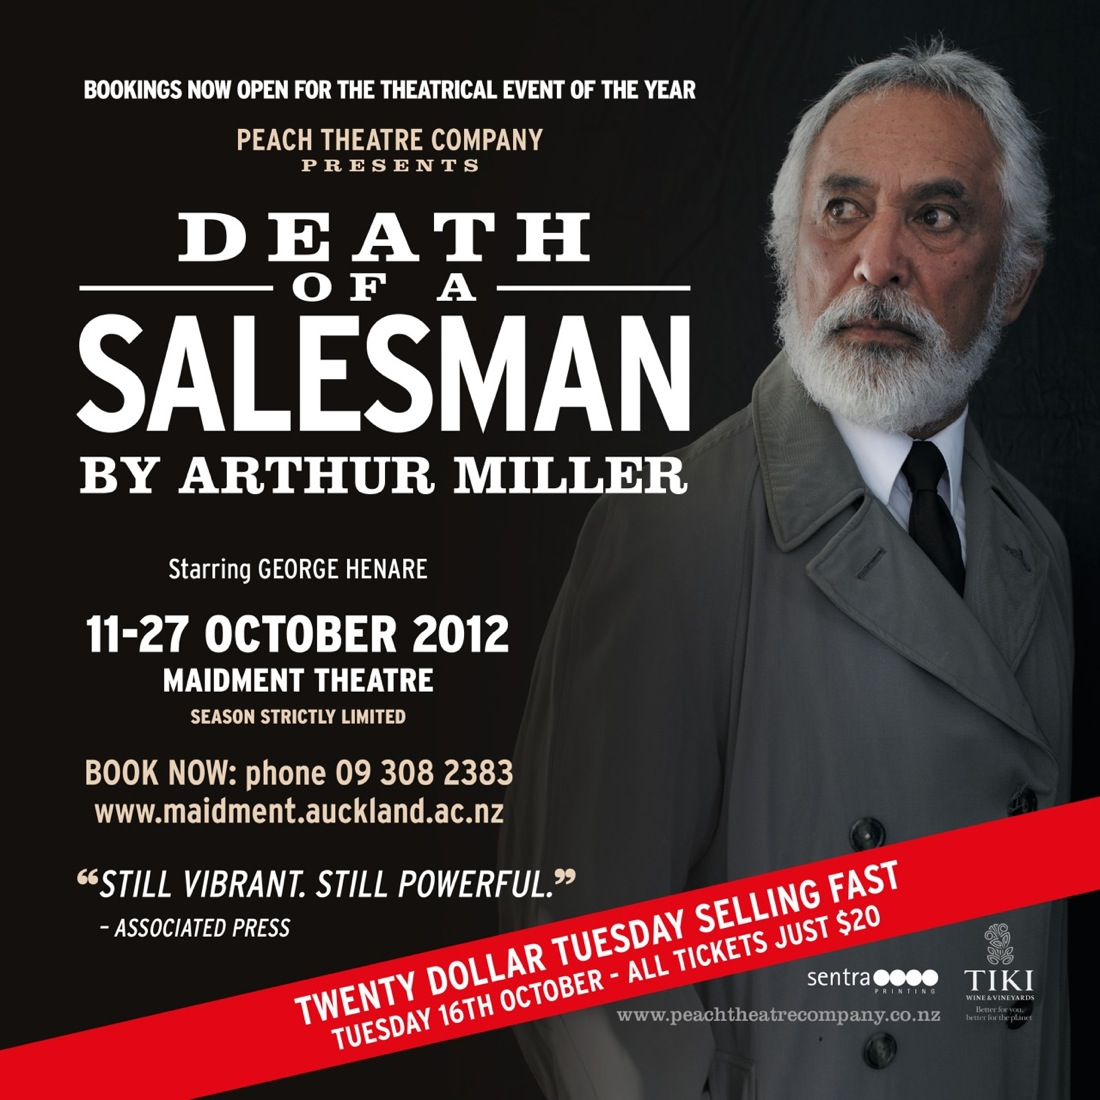 arthur millers childhood as the basis for the play death of a salesman Longmont high school performing arts proudly presents death of a salesman written by arthur miller (plot summary from wikipedia) willy loman returns home exhausted after a cancelled business trip.